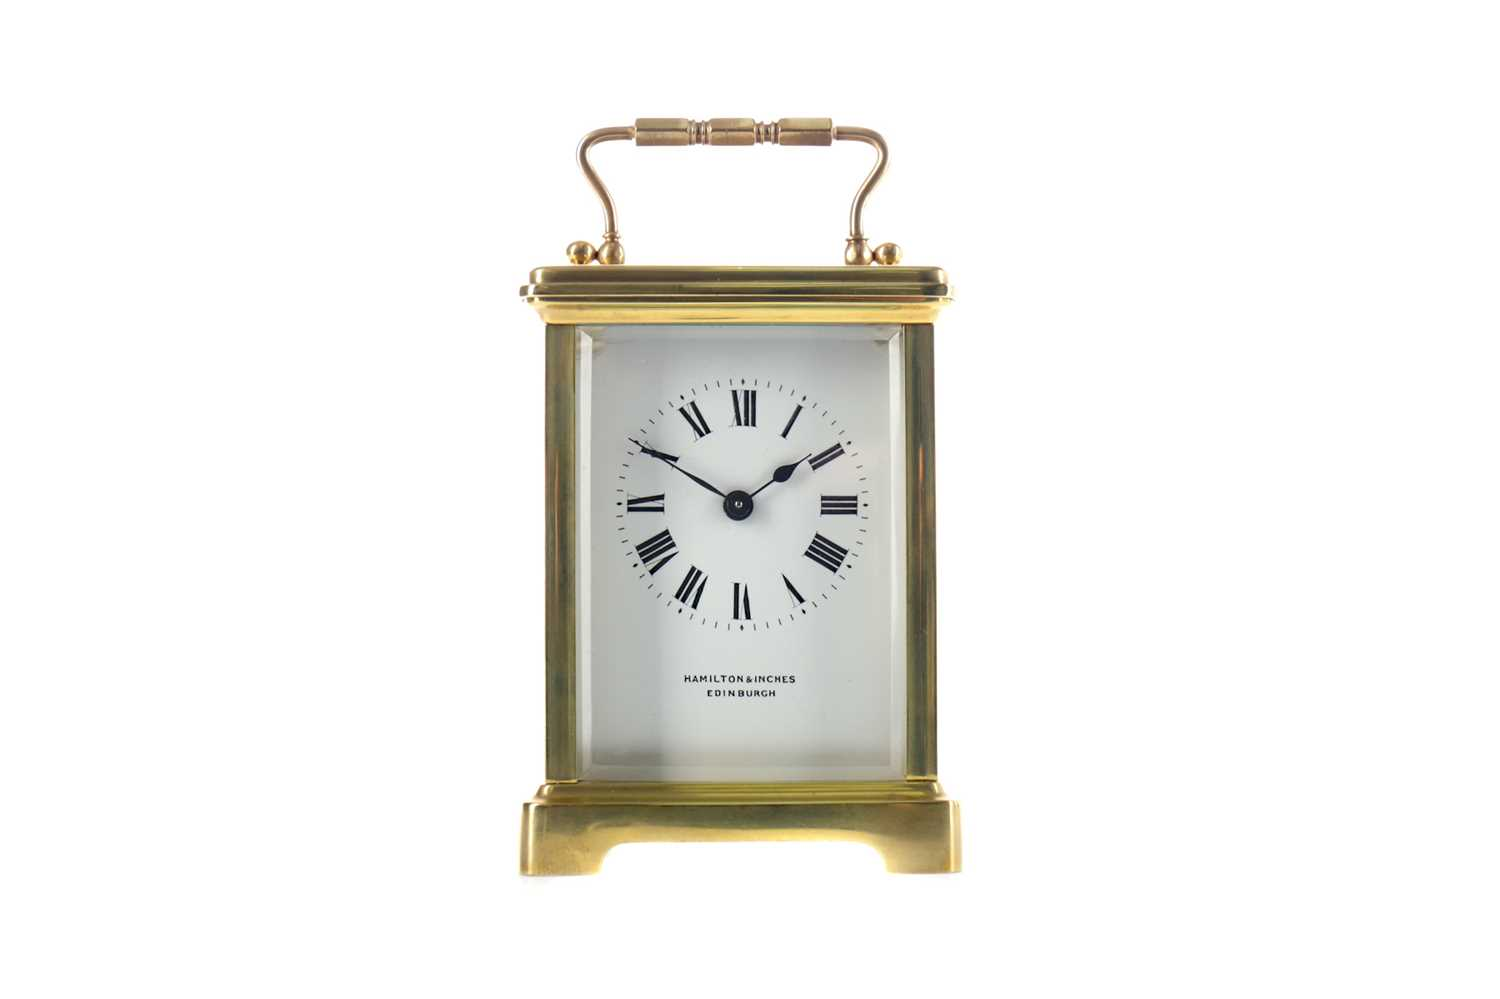 Lot 1738 - AN EARLY 20TH CENTURY CARRIAGE CLOCK